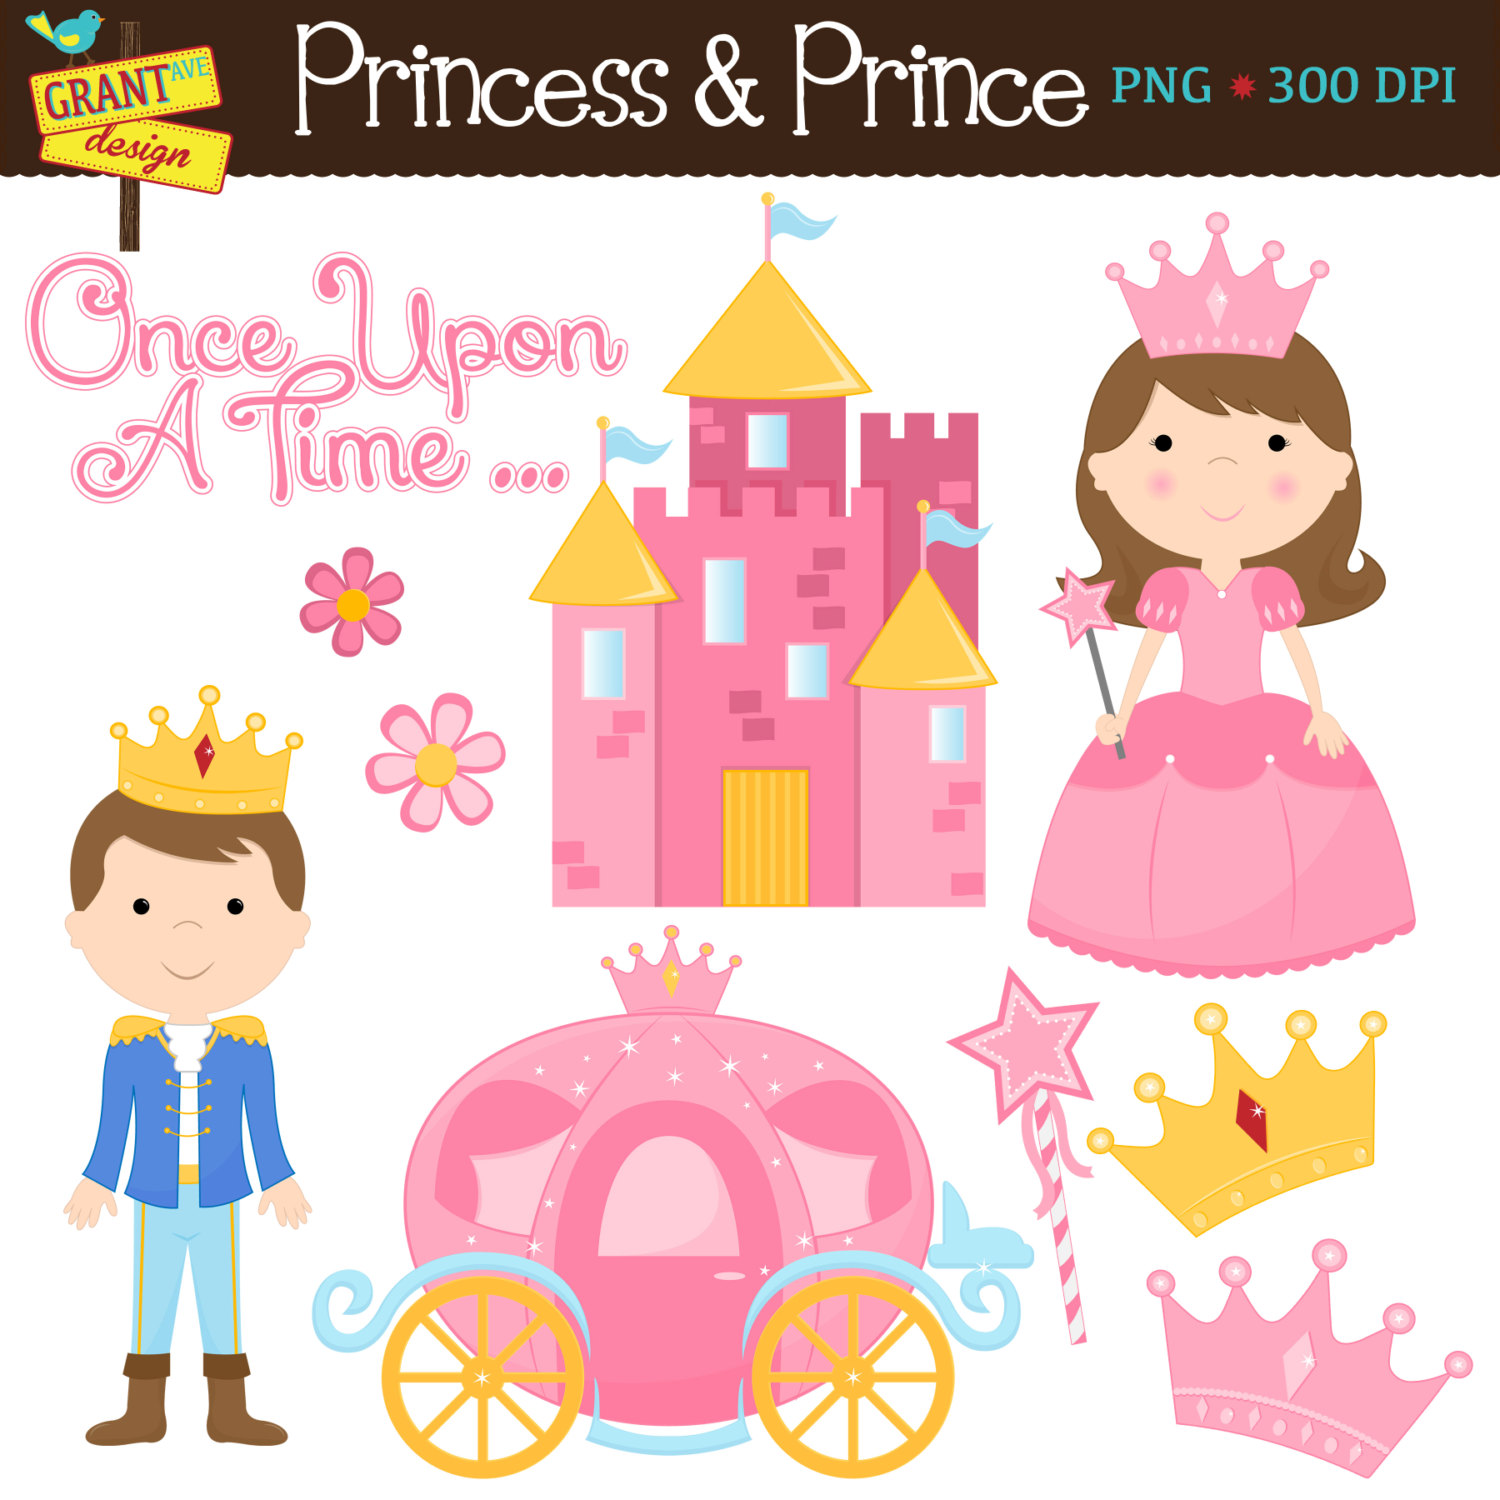 Princess Clipart Cute Digital Clipart Set By Grantavenuedesign